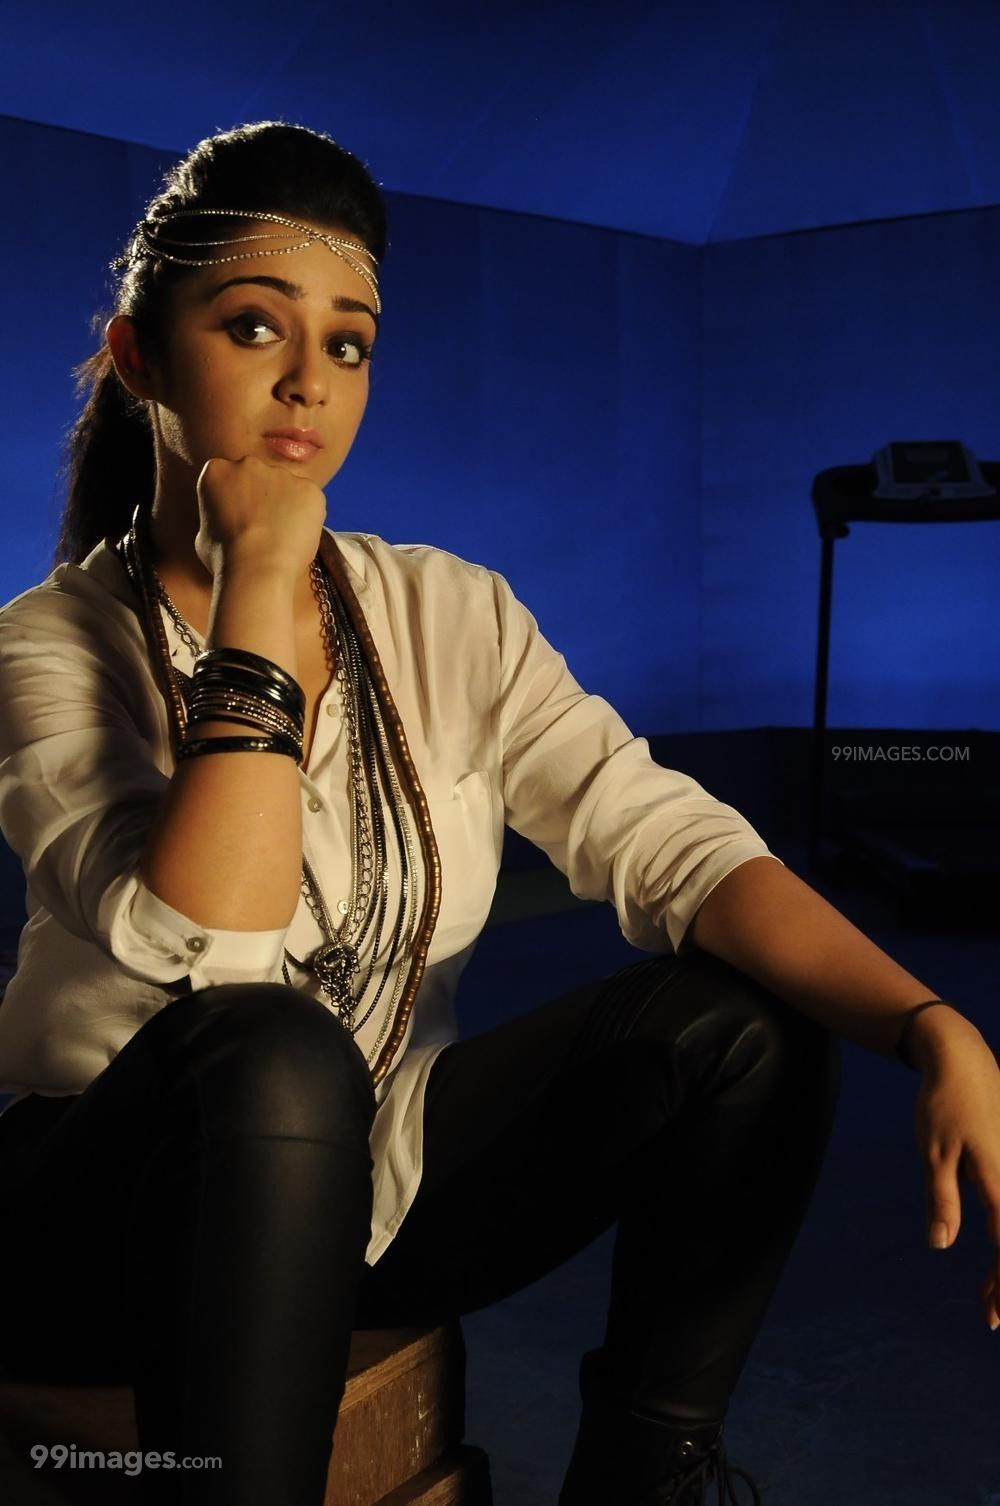 Charmy Kaur Beautiful Photos & Mobile Wallpapers HD (Android/iPhone) (1080p) (358066) - Charmy Kaur